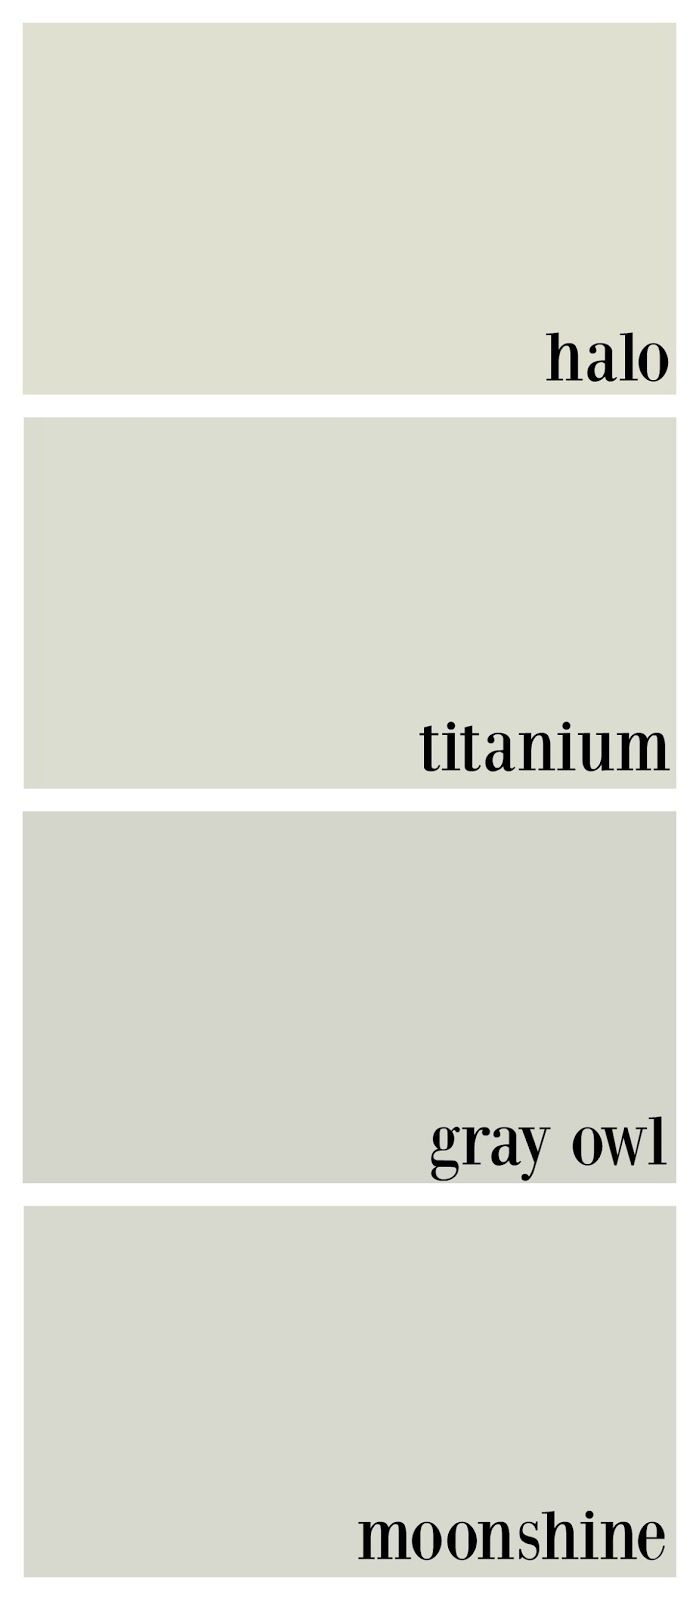 This may be the  perfect shades for the rest of the house! benjamin moore gray owl, benjamin moore titanium, benjamin moore halo, benjamin moore moonshine comparison